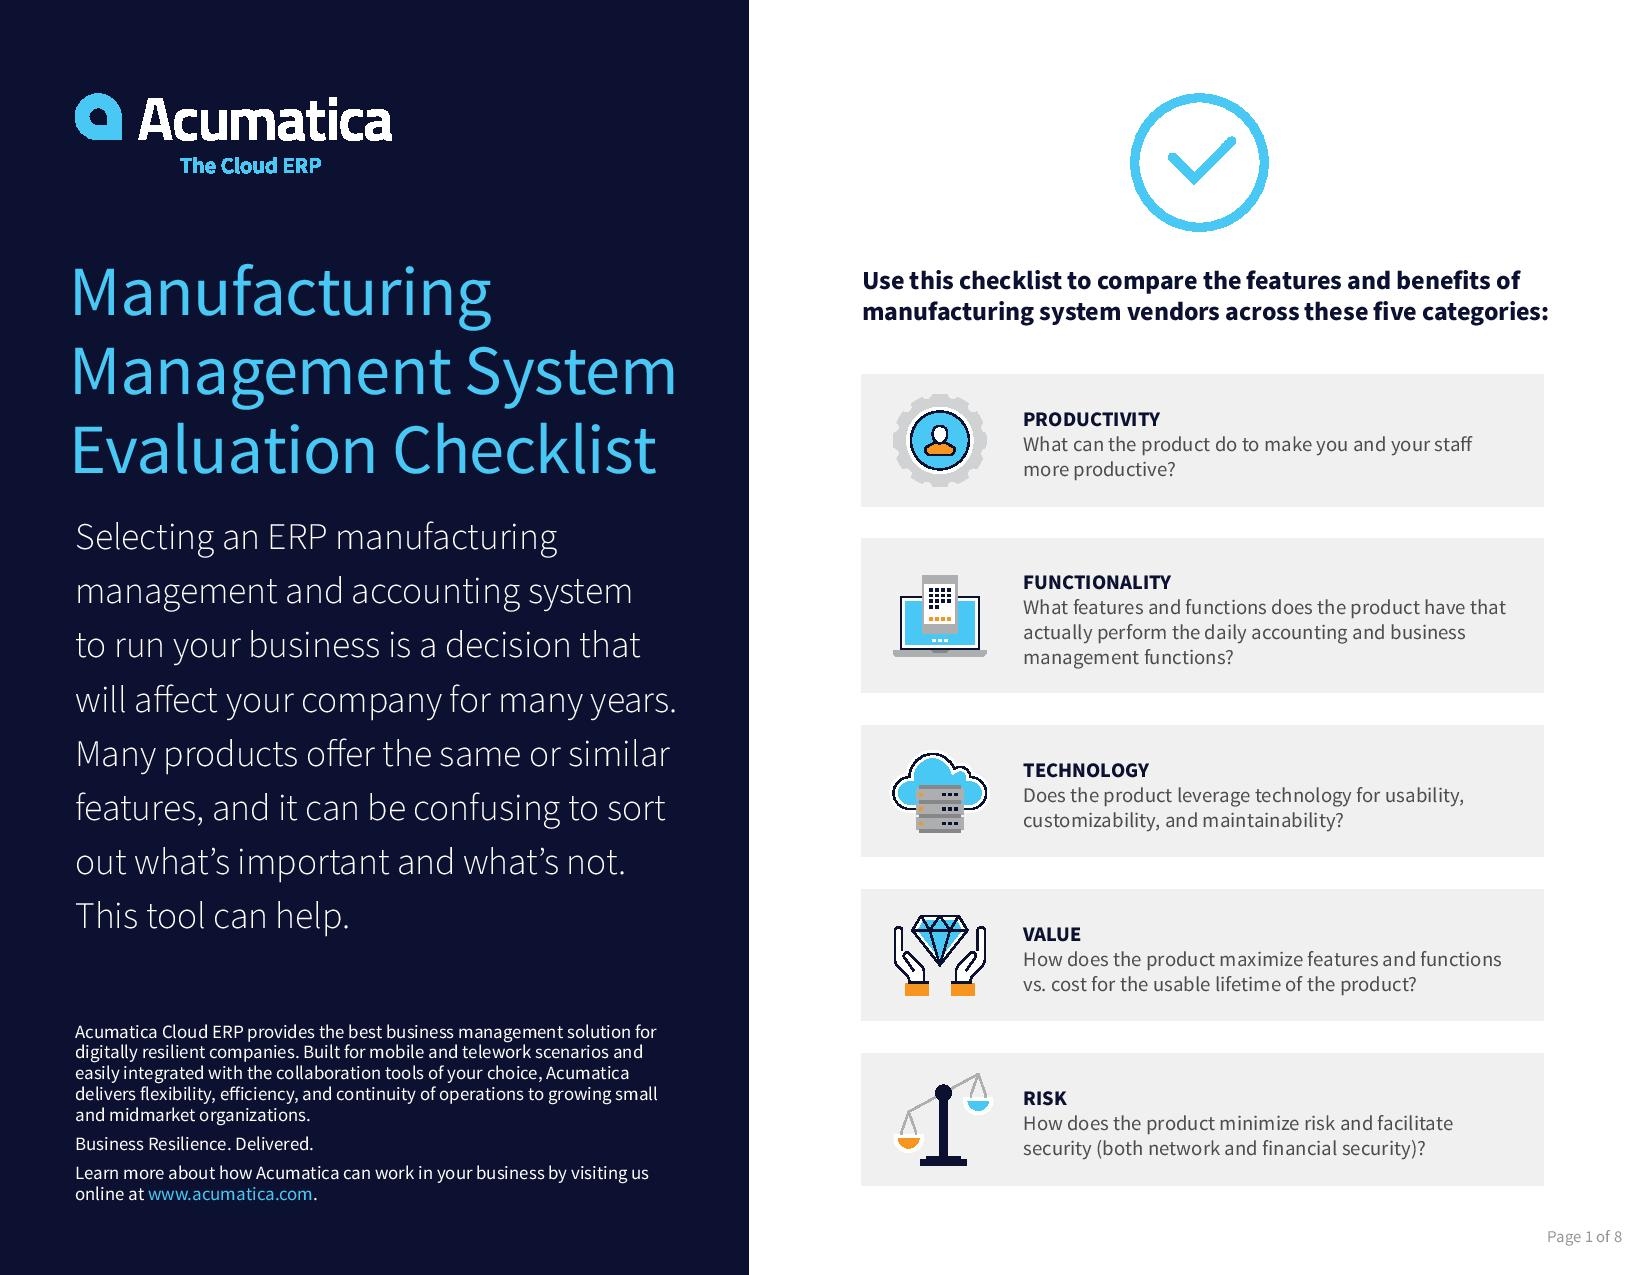 Find your ideal manufacturing management system with this free checklist., page 0